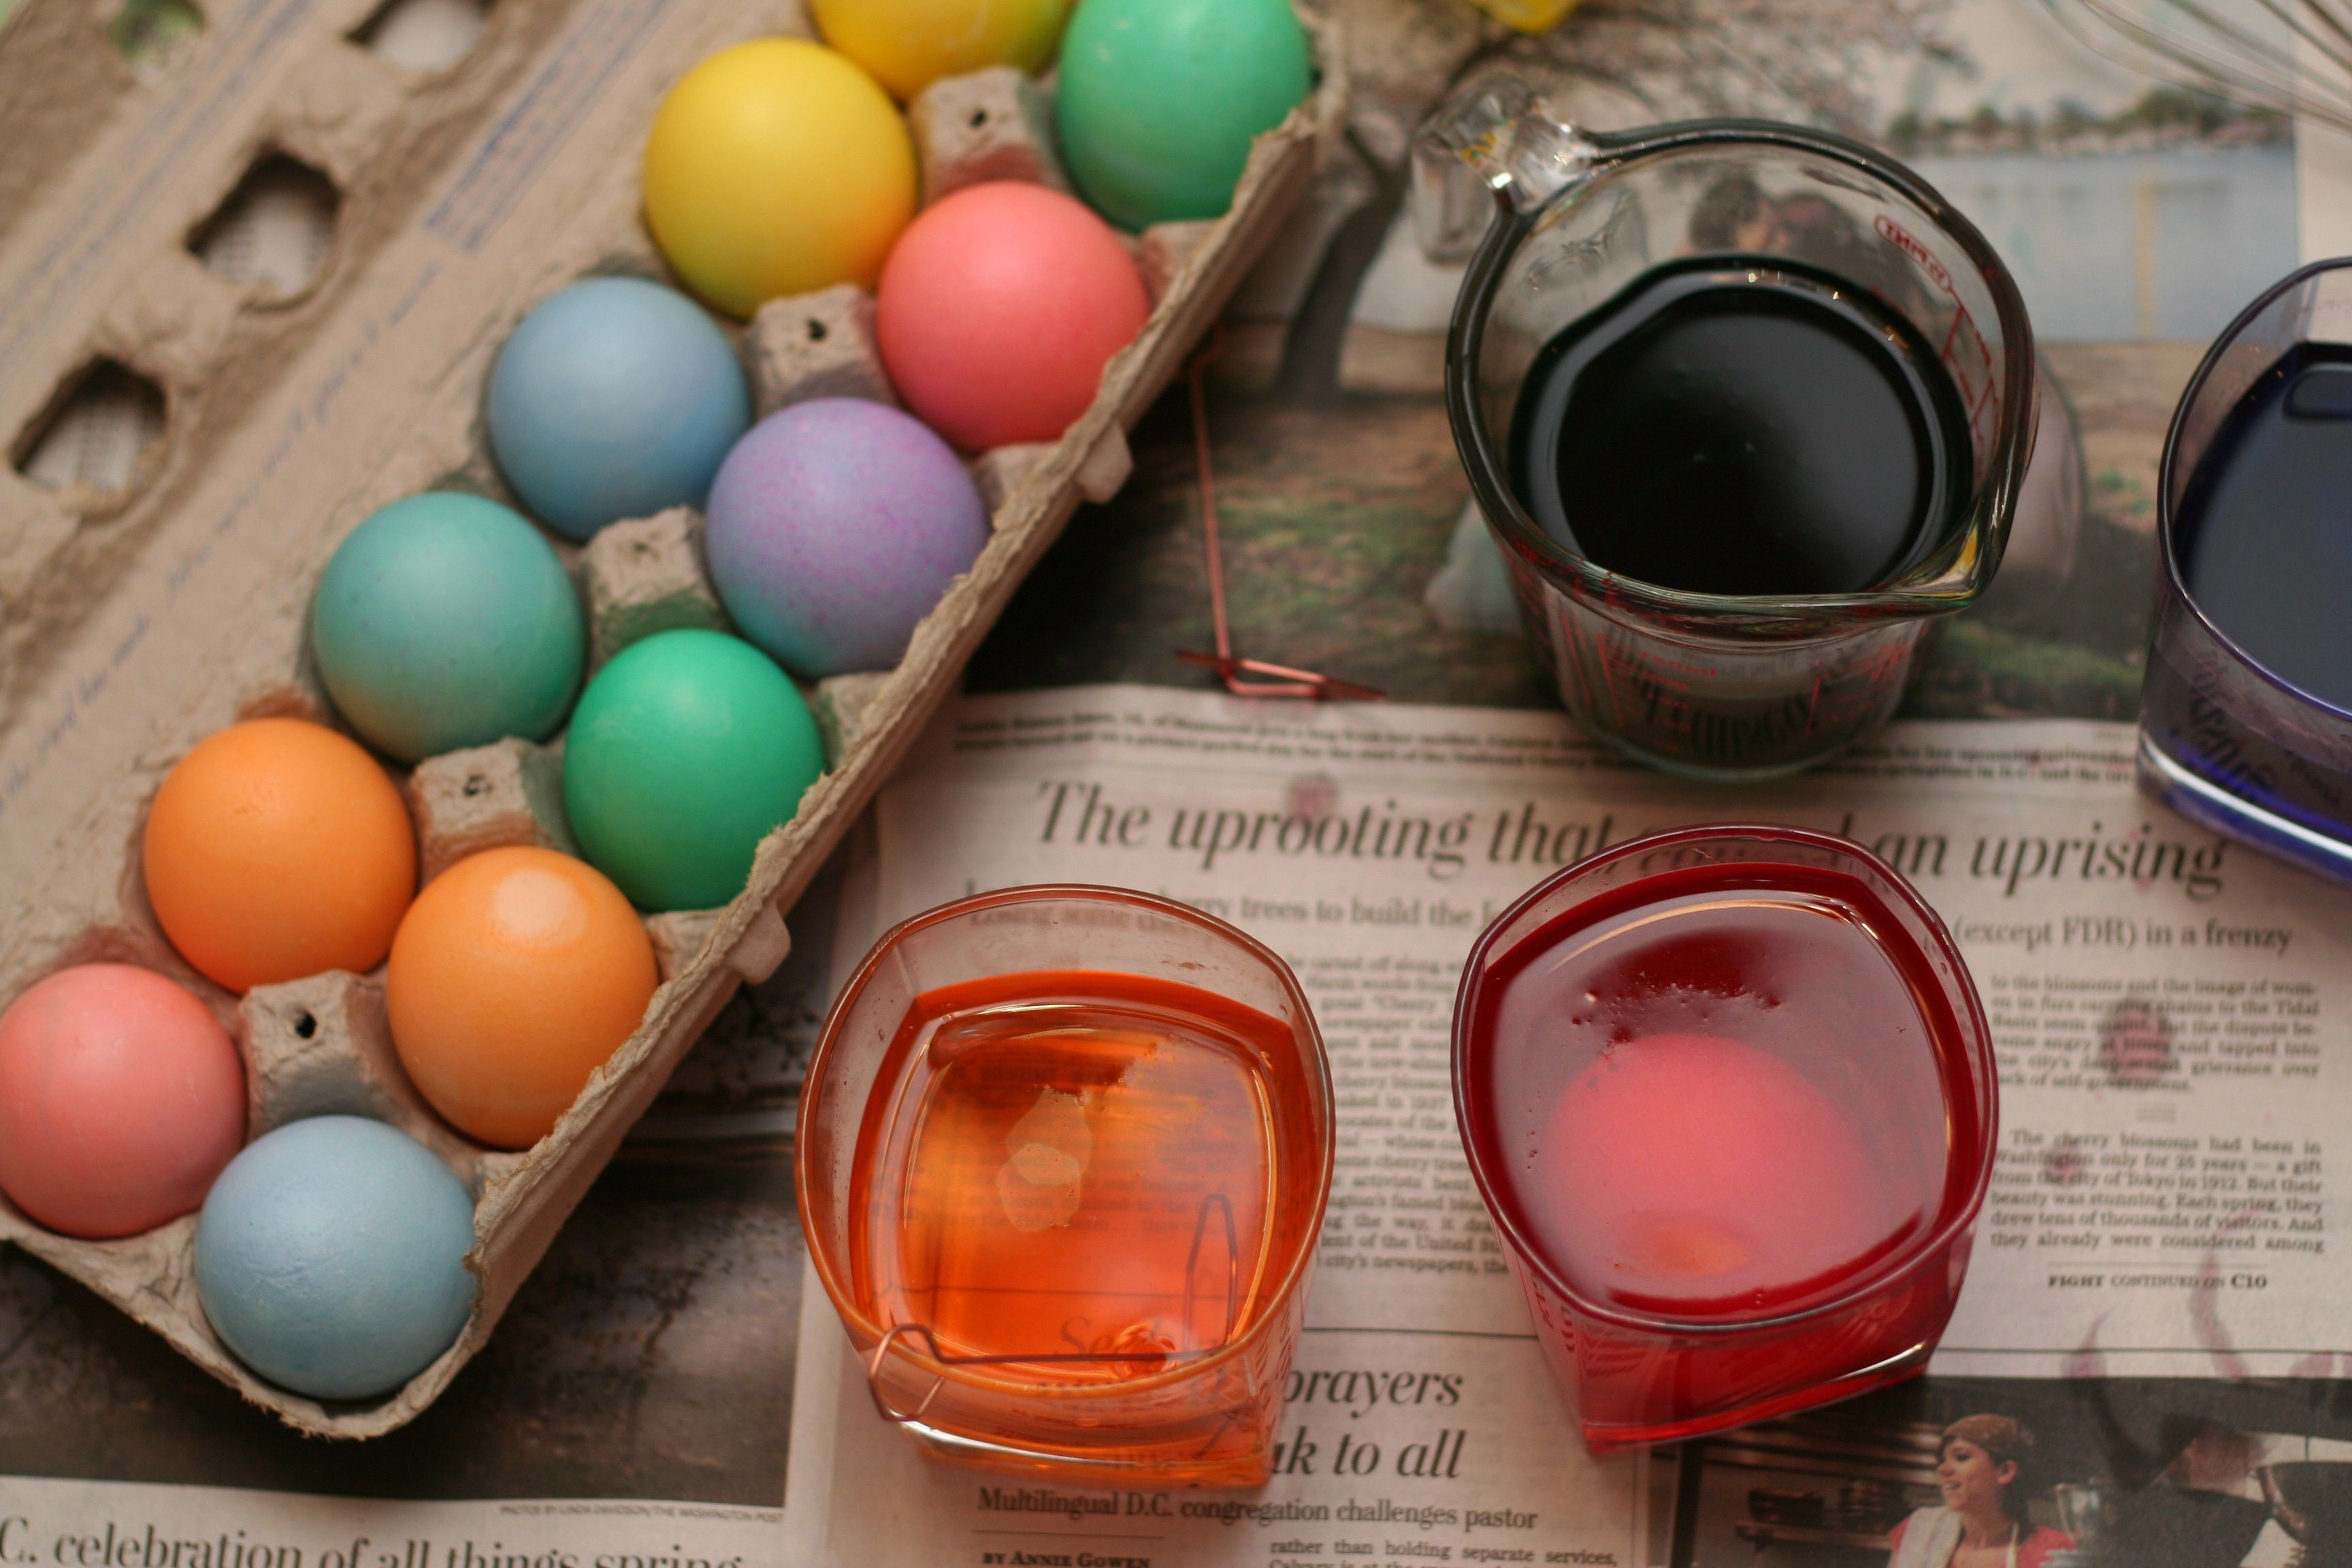 Several cups of Easter egg dye near a carton of newly colored eggs.